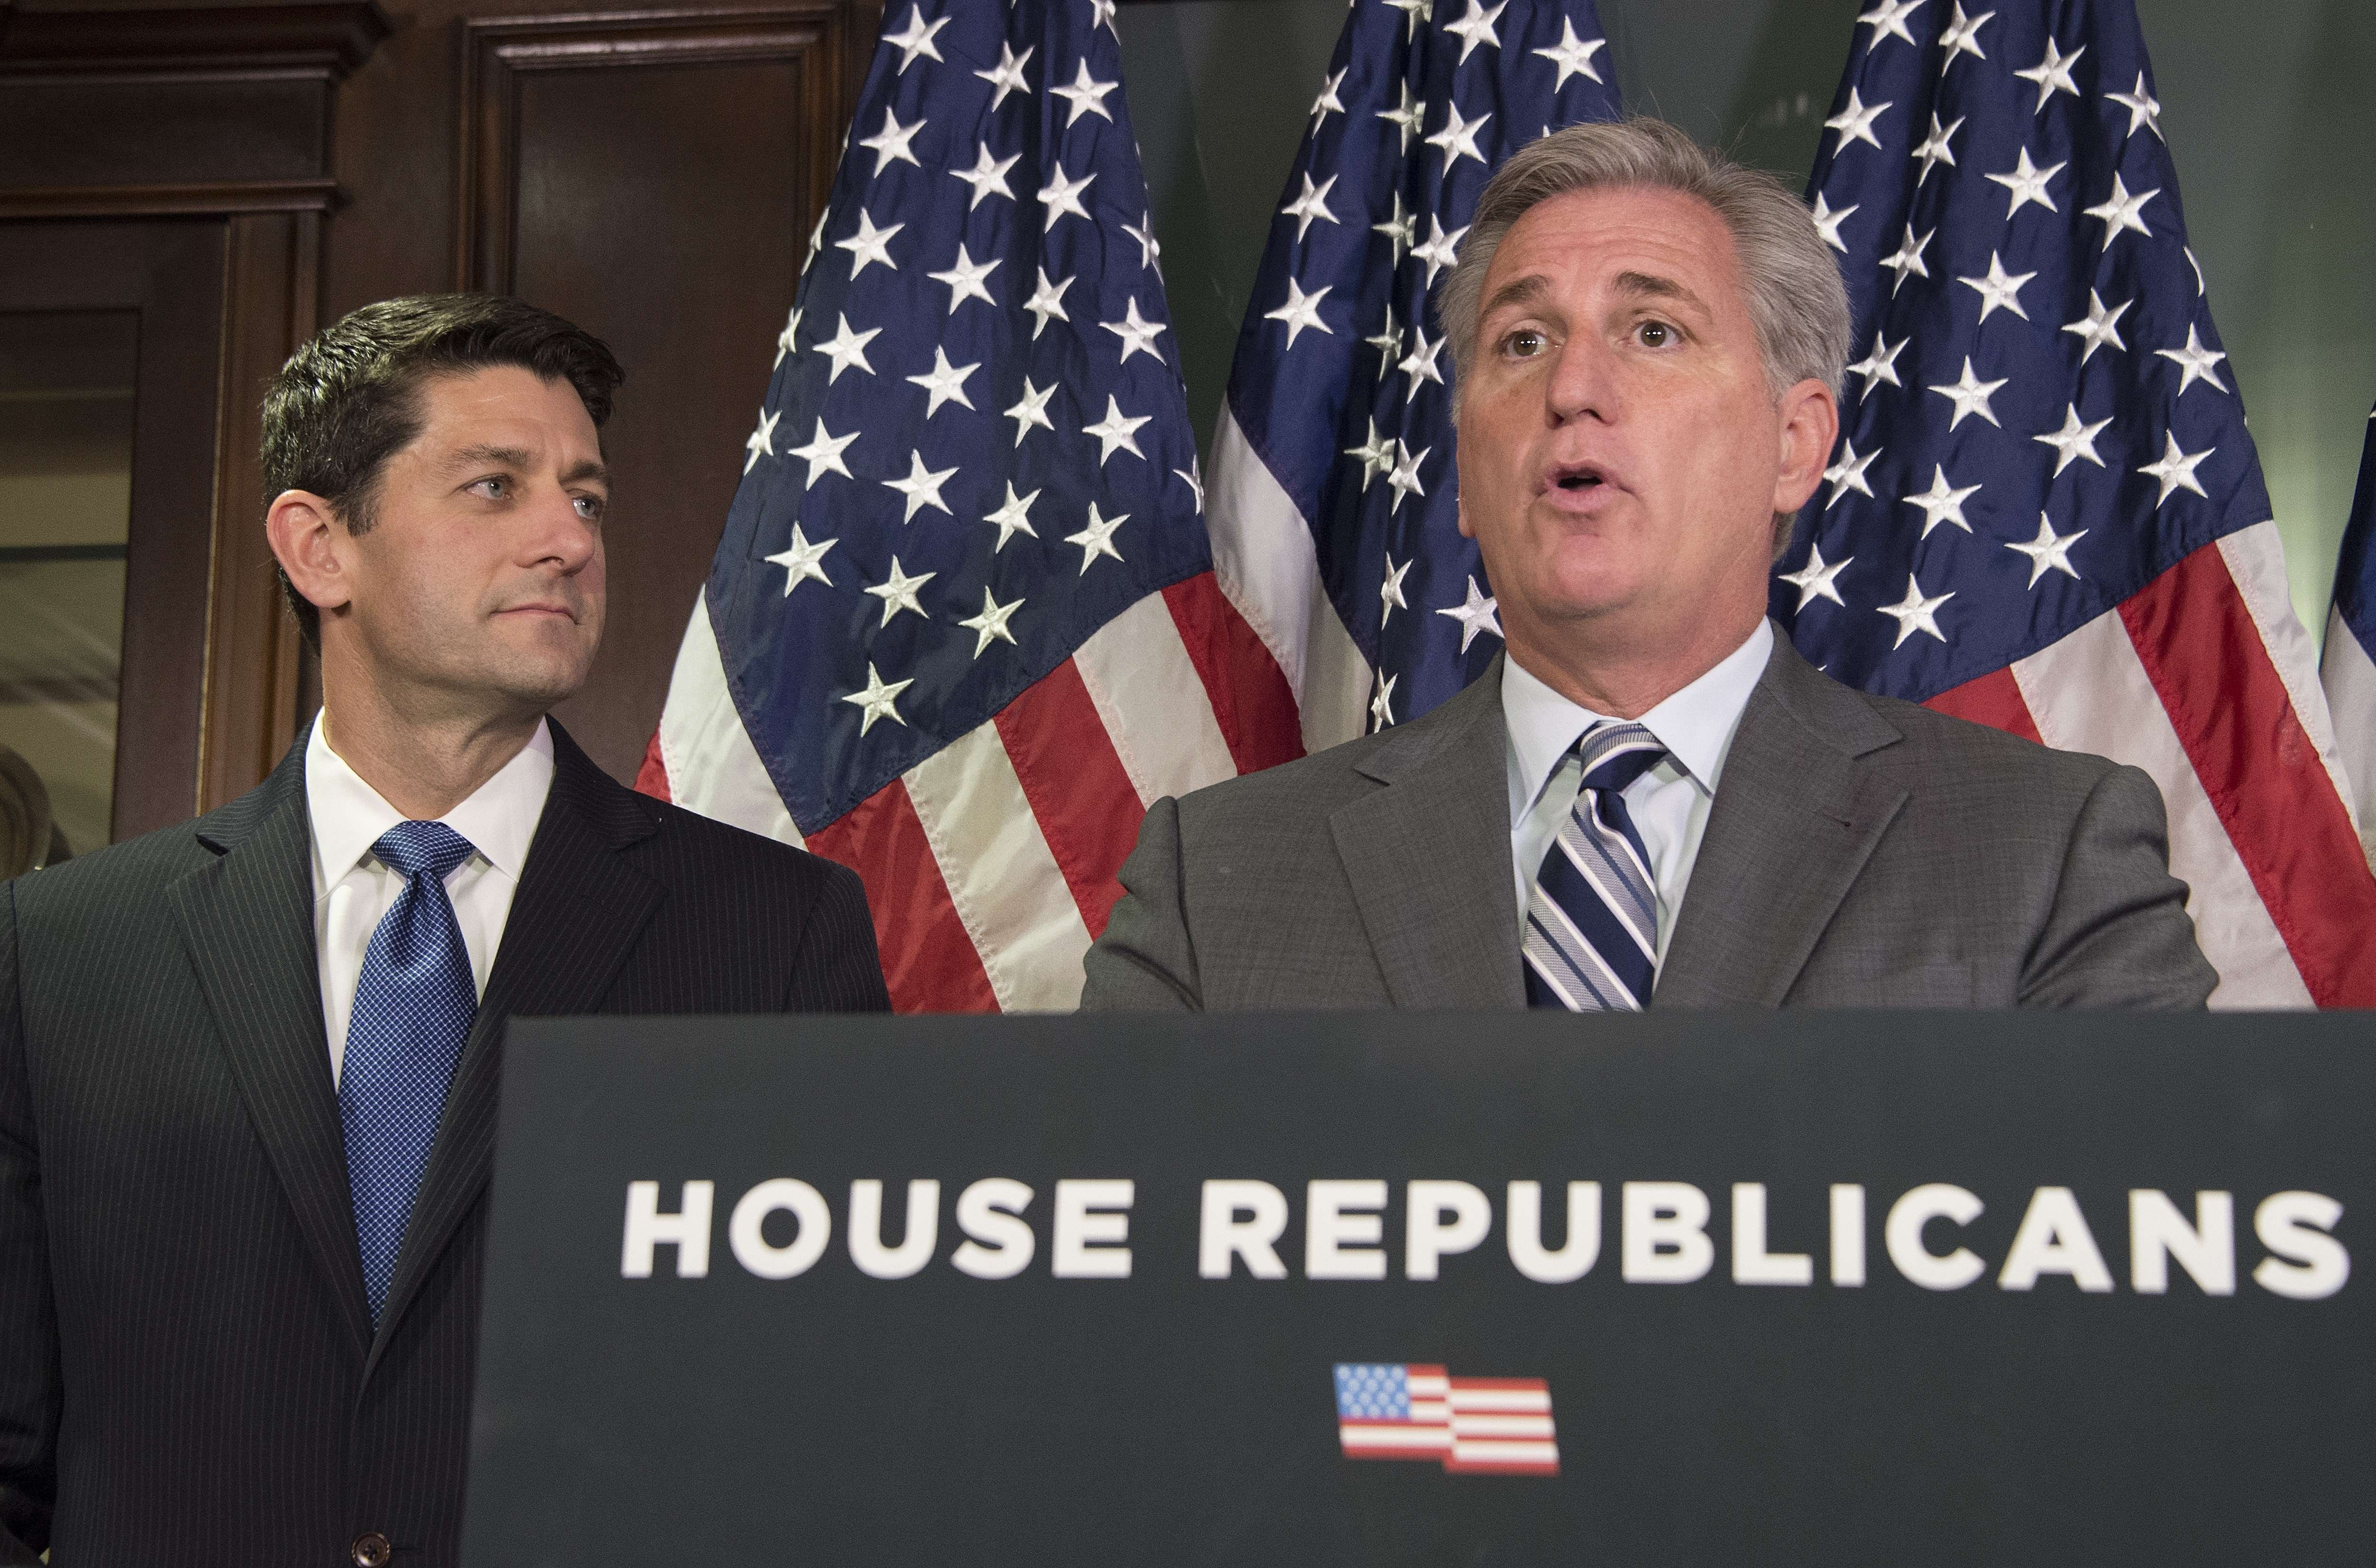 House Majority Leader Kevin McCarthy (R-Calif.) released the 2016 calendar for the House of Representatives on Tuesday.